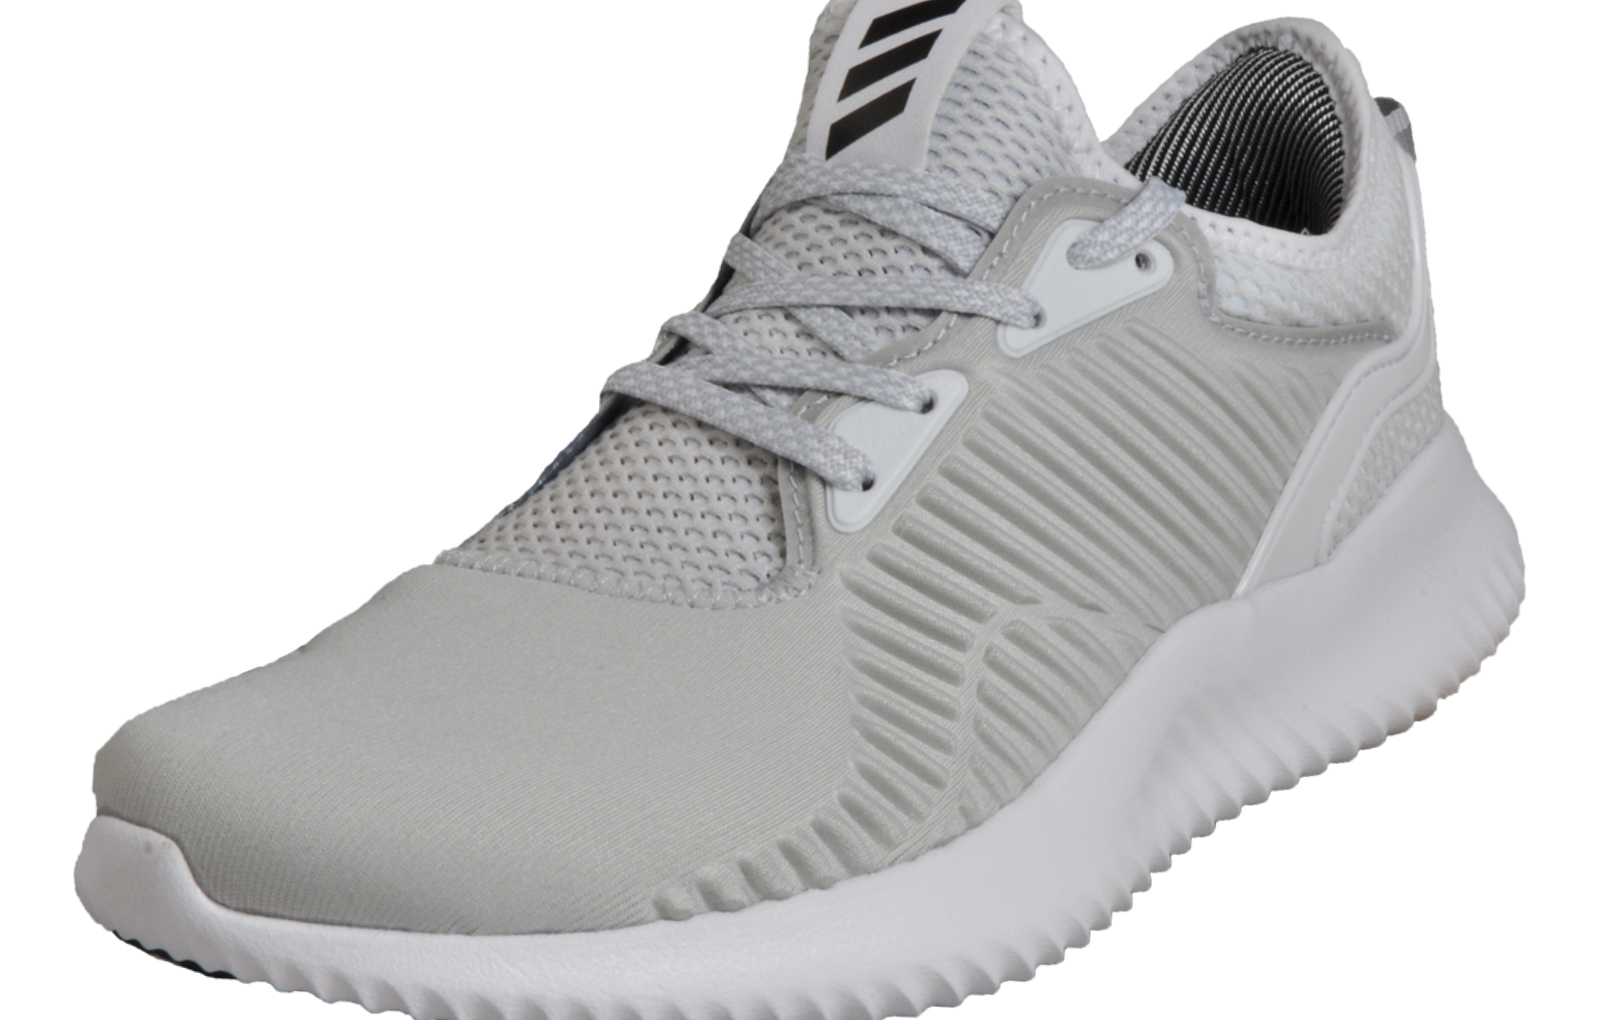 e691ca6a84dd7 Clear Grey   White   Crystal White. Adidas Alphabounce Lux Womens -  AD167130. alternate view 2. alternate view 1